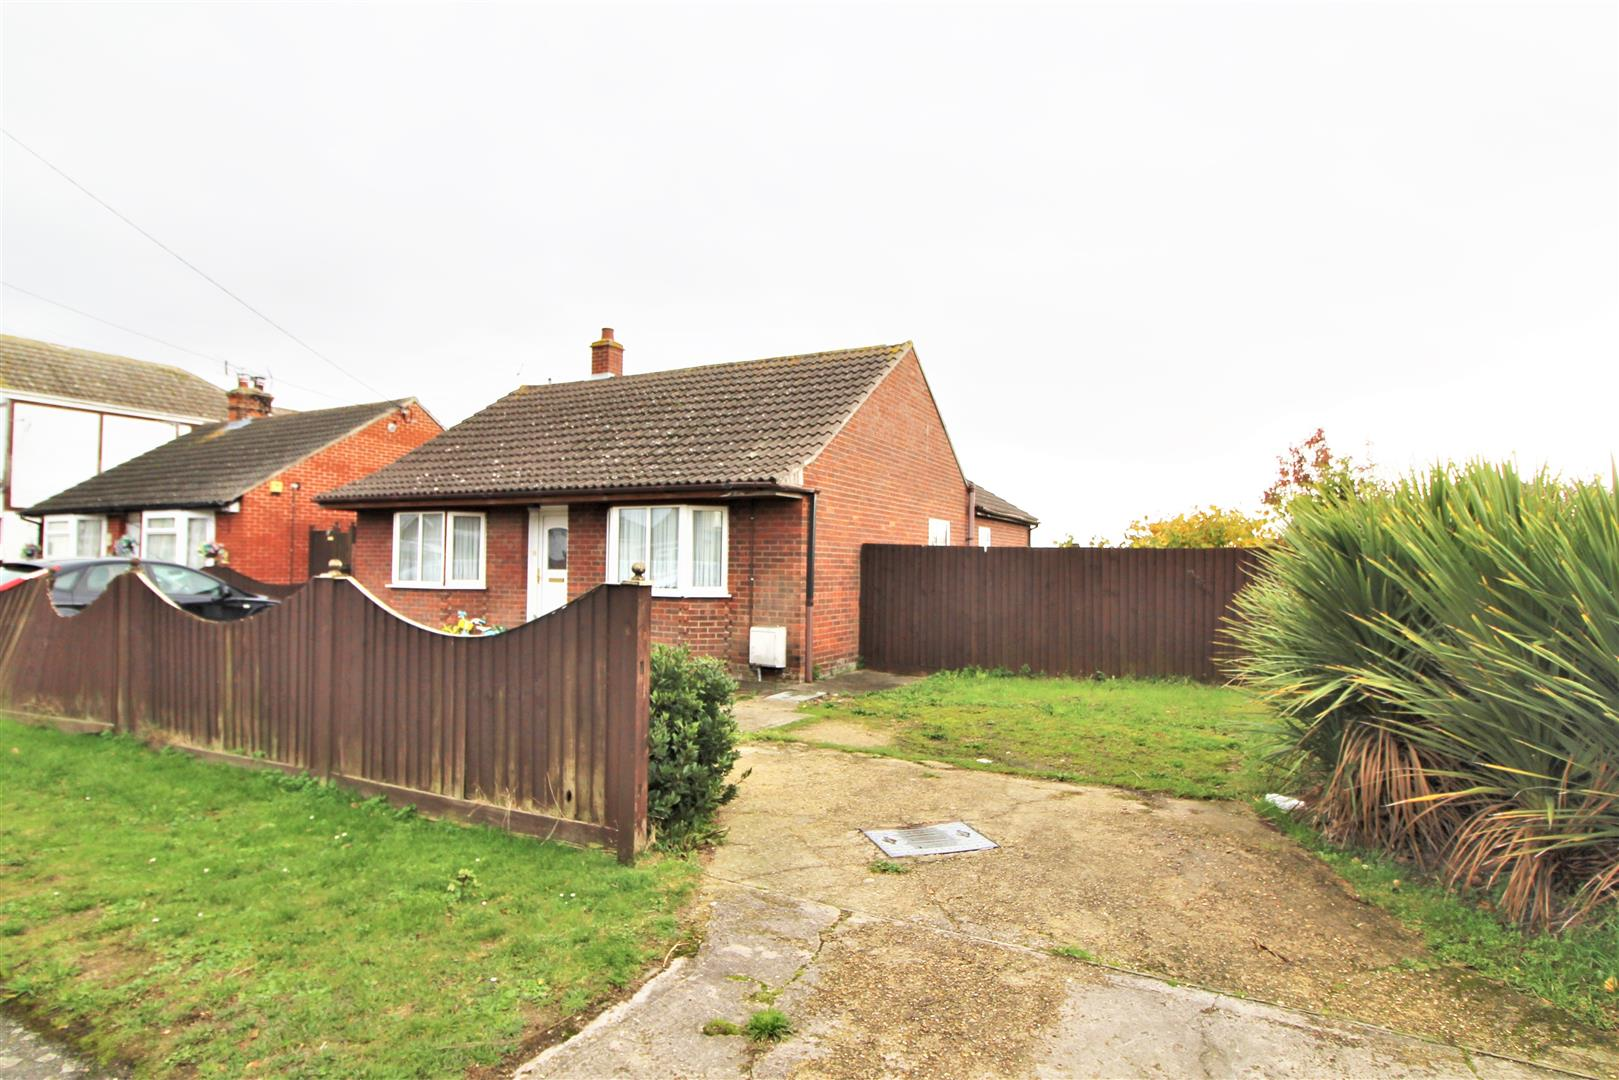 Feverills Road, Little Clacton, Essex, CO16 9LZ